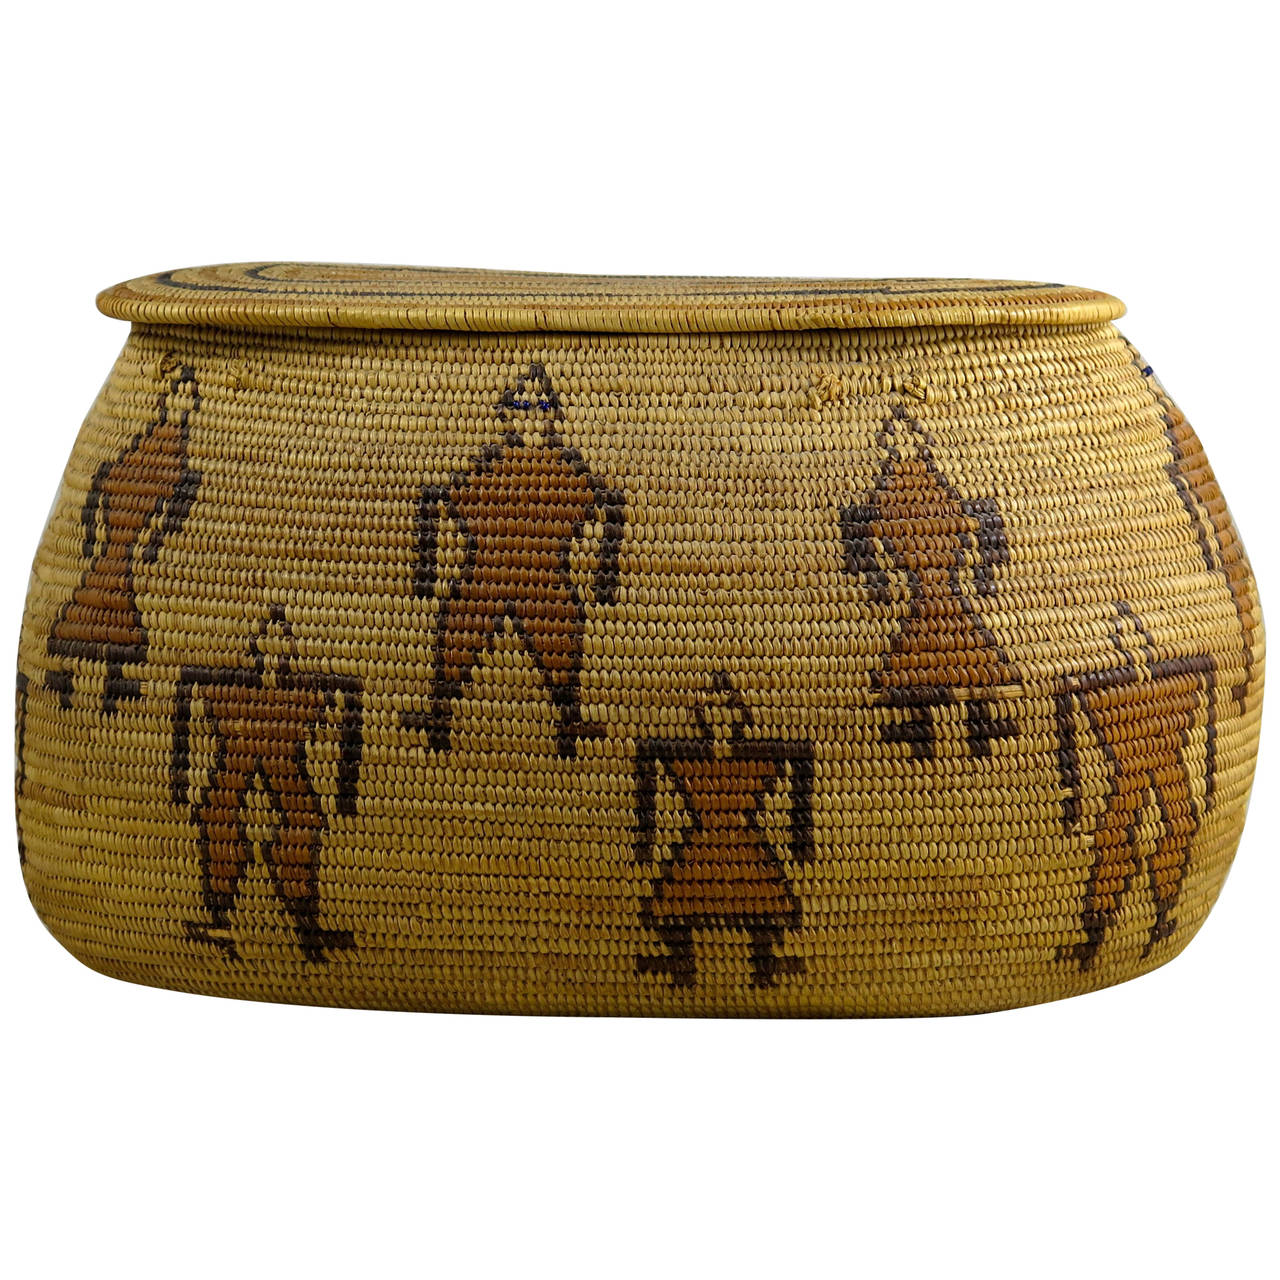 Rare 29 Palms Chemehuevi Native American Basket, Early 20th Century 1